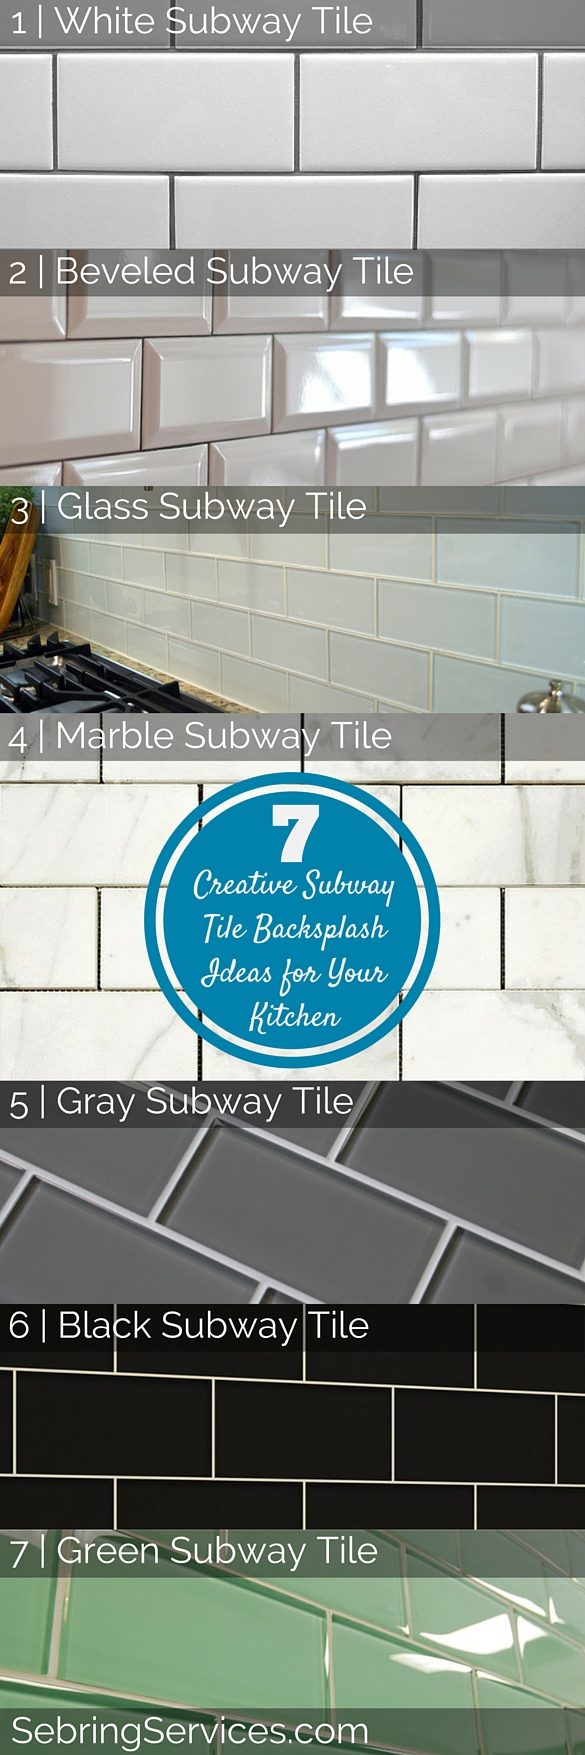 7 Creative Subway Tile Backsplash Ideas For Your Kitchen Home - Mosaic-backsplash-creative